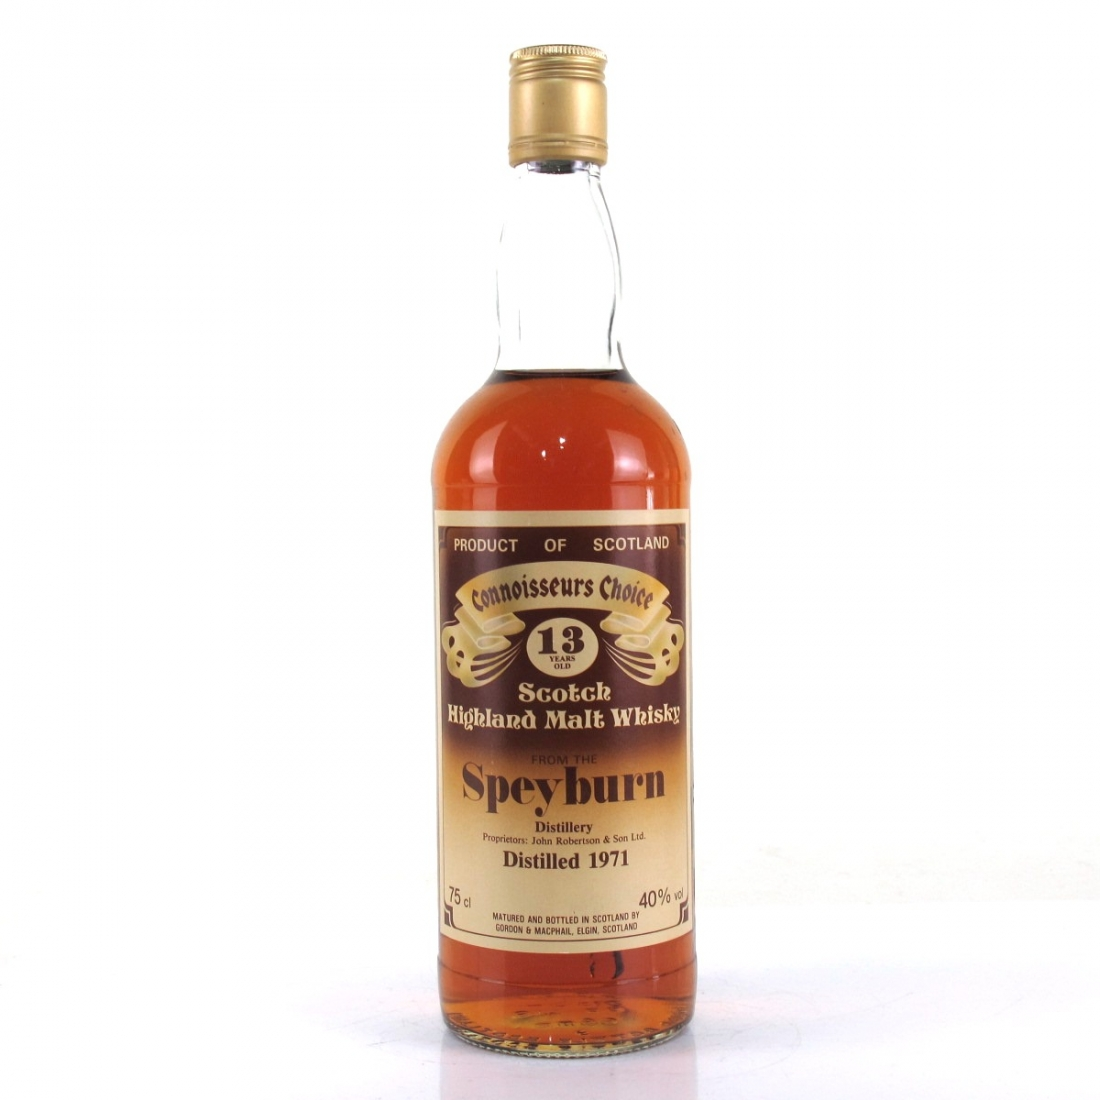 Speyburn 1971 Gordon and MacPhail 13 Year Old